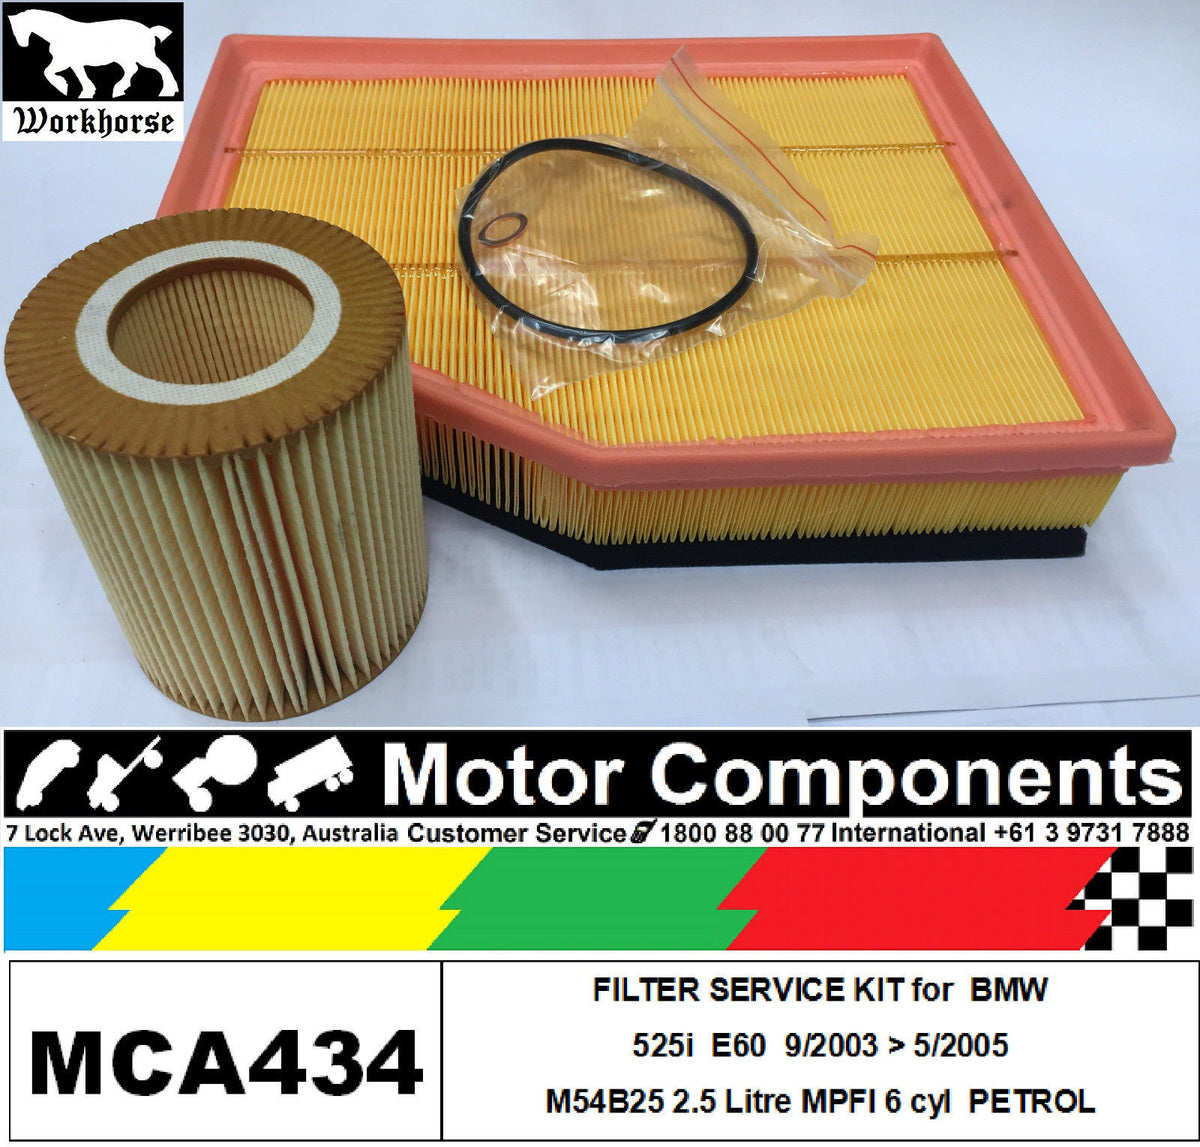 OIL FILTER LOMBARDINI LDA-672 BMW 11427787697 ALFA HU722X – Motor on 7.3 fuel regulator, 7.3 fuel pump replacement, 7.3 fuel cap, 7.3 fuel injector, 7.3 fuel sensor, 7.3 fuel housing, 7.3 fuel pump location, 7.3 fuel banjo bolt, 7.3 fuel pump relay, 7.3 fuel sending unit, 7.3 fuel check valve, 7.3 fuel drain valve kit, 7.3 fuel tank, 7.3 fuel lines, 7.3 fuel pump pressure, 7.3 fuel pressure relief valve, 7.3 fuel bowl delete kit, 7.3 fuel bowl rebuild kit, 7.3 fuel spring,